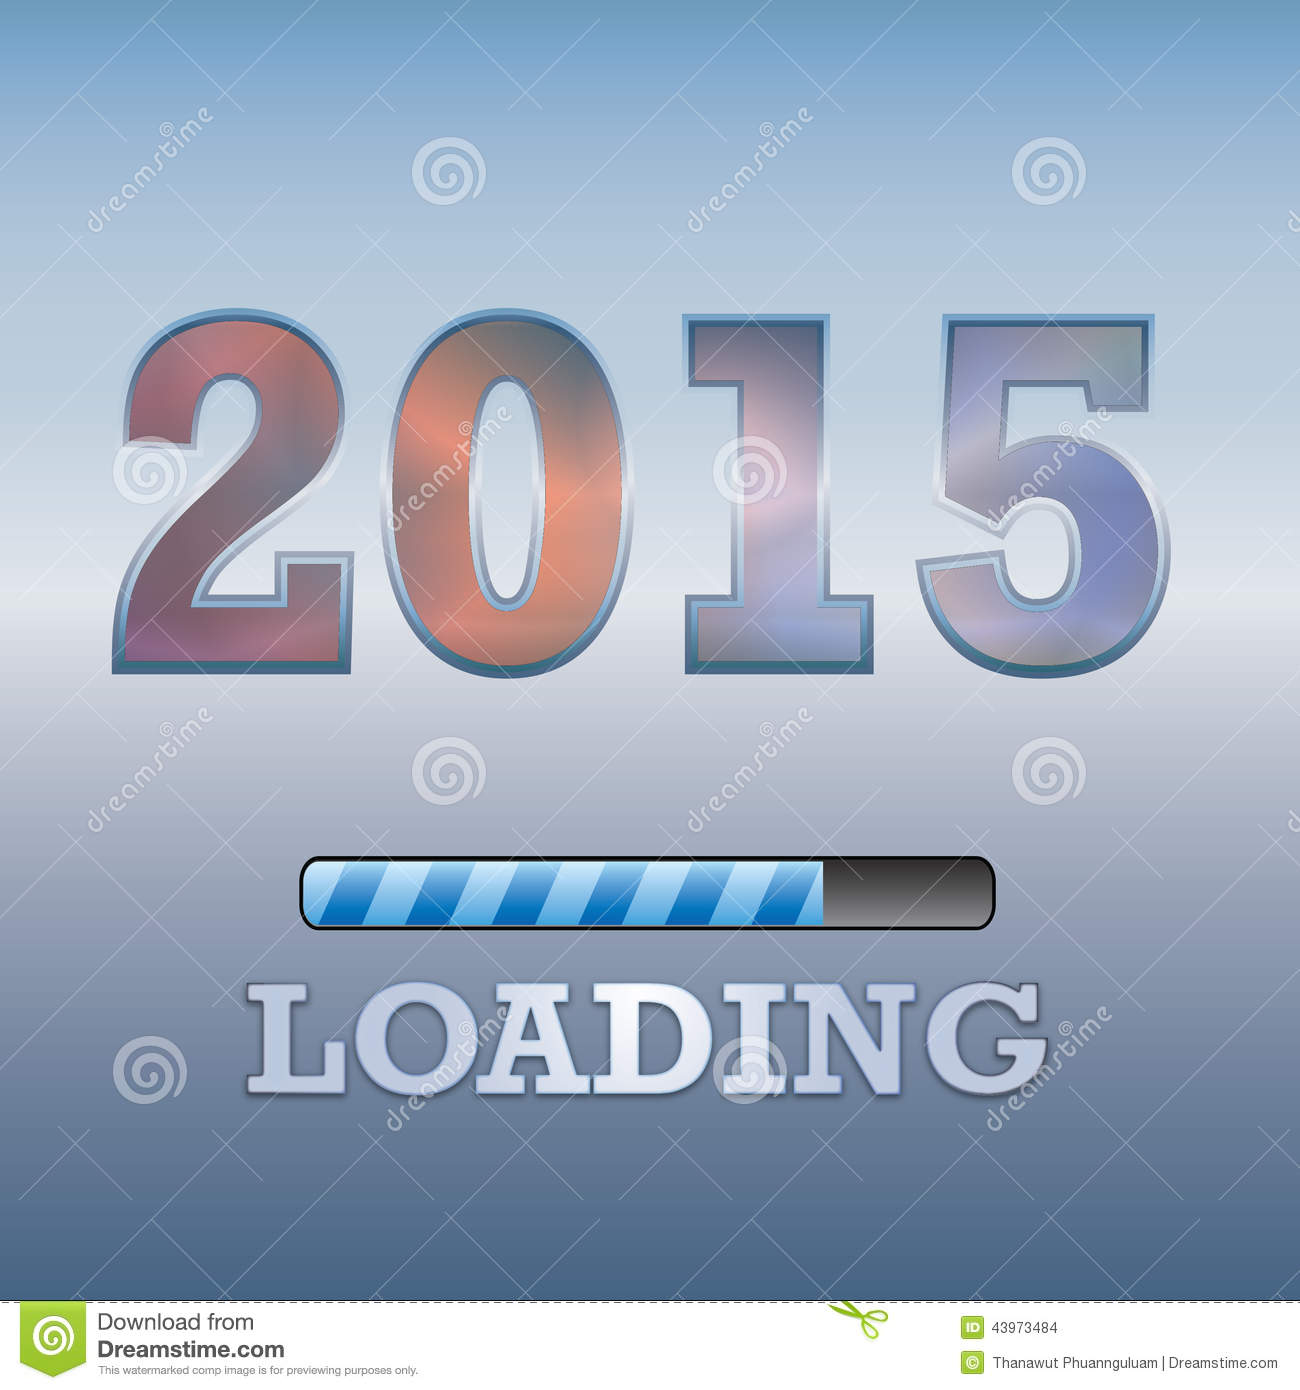 2015 text with loading symbol on blue background stock 2015 text with loading symbol on blue background biocorpaavc Image collections